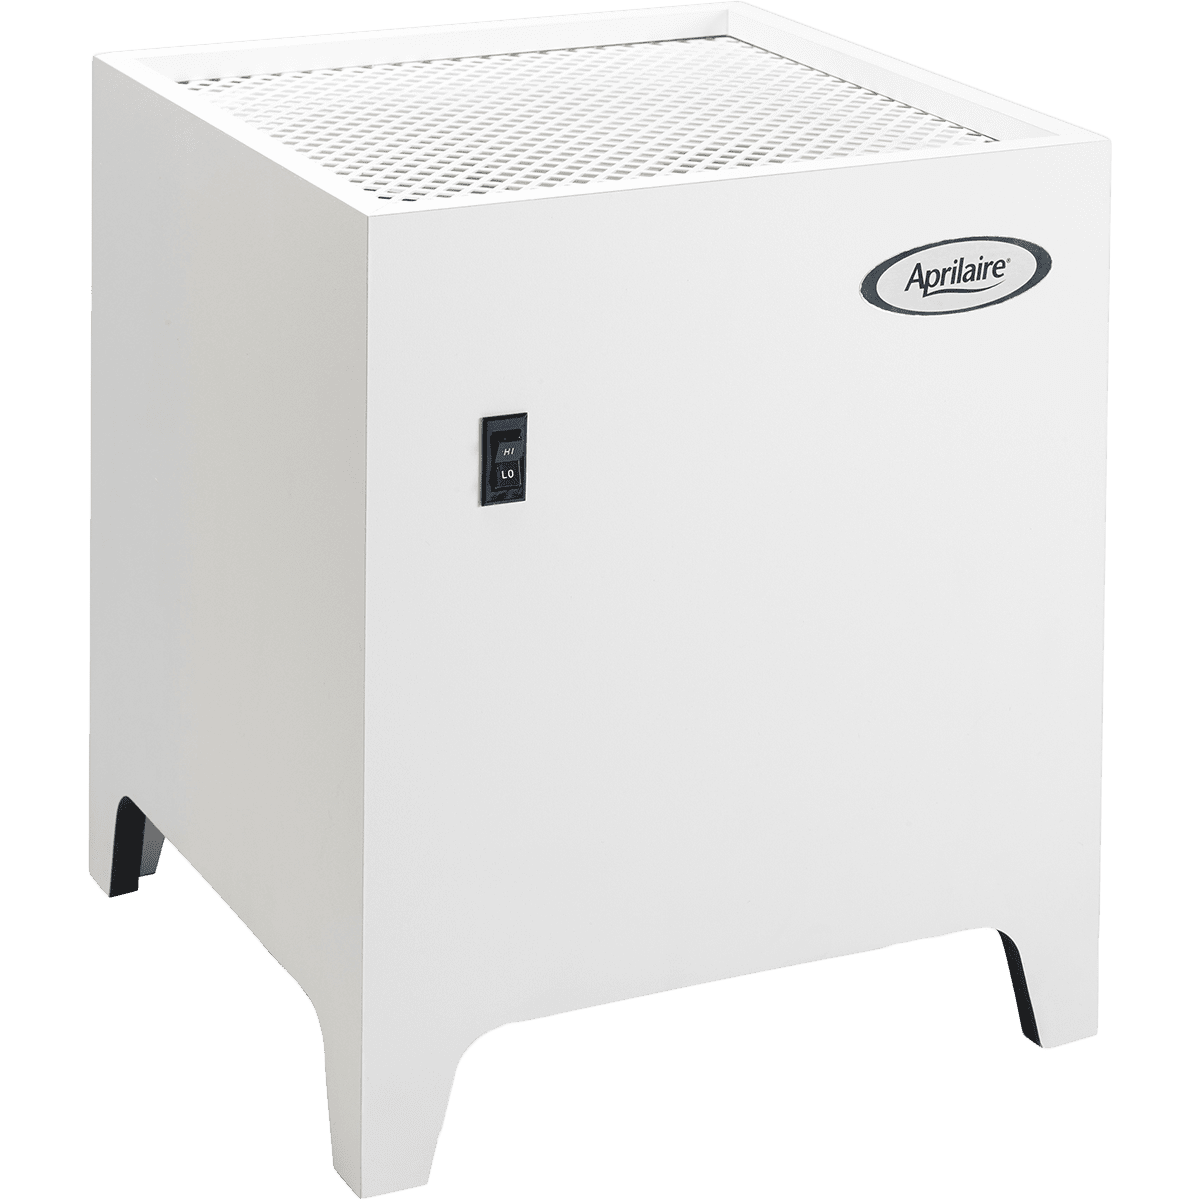 Aprilaire 2275 Portable High Efficiency Air Cleaner ap5669